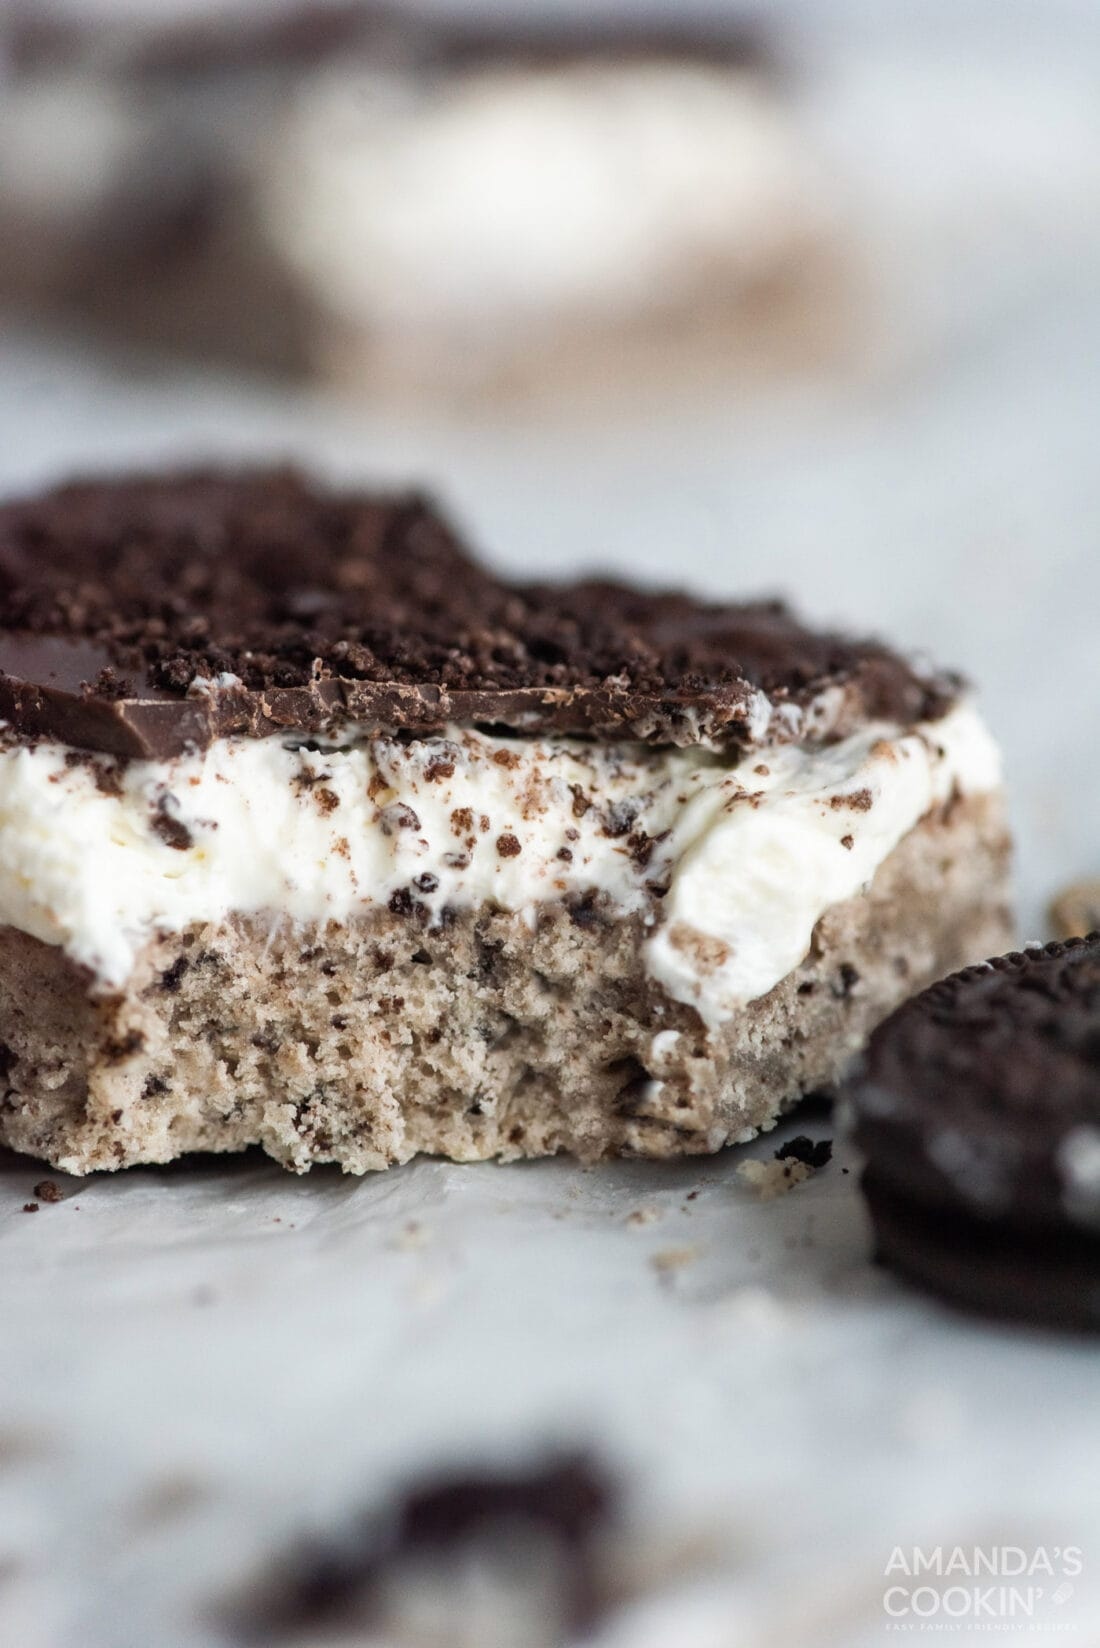 oreo cheesecake bar with a bite out of it